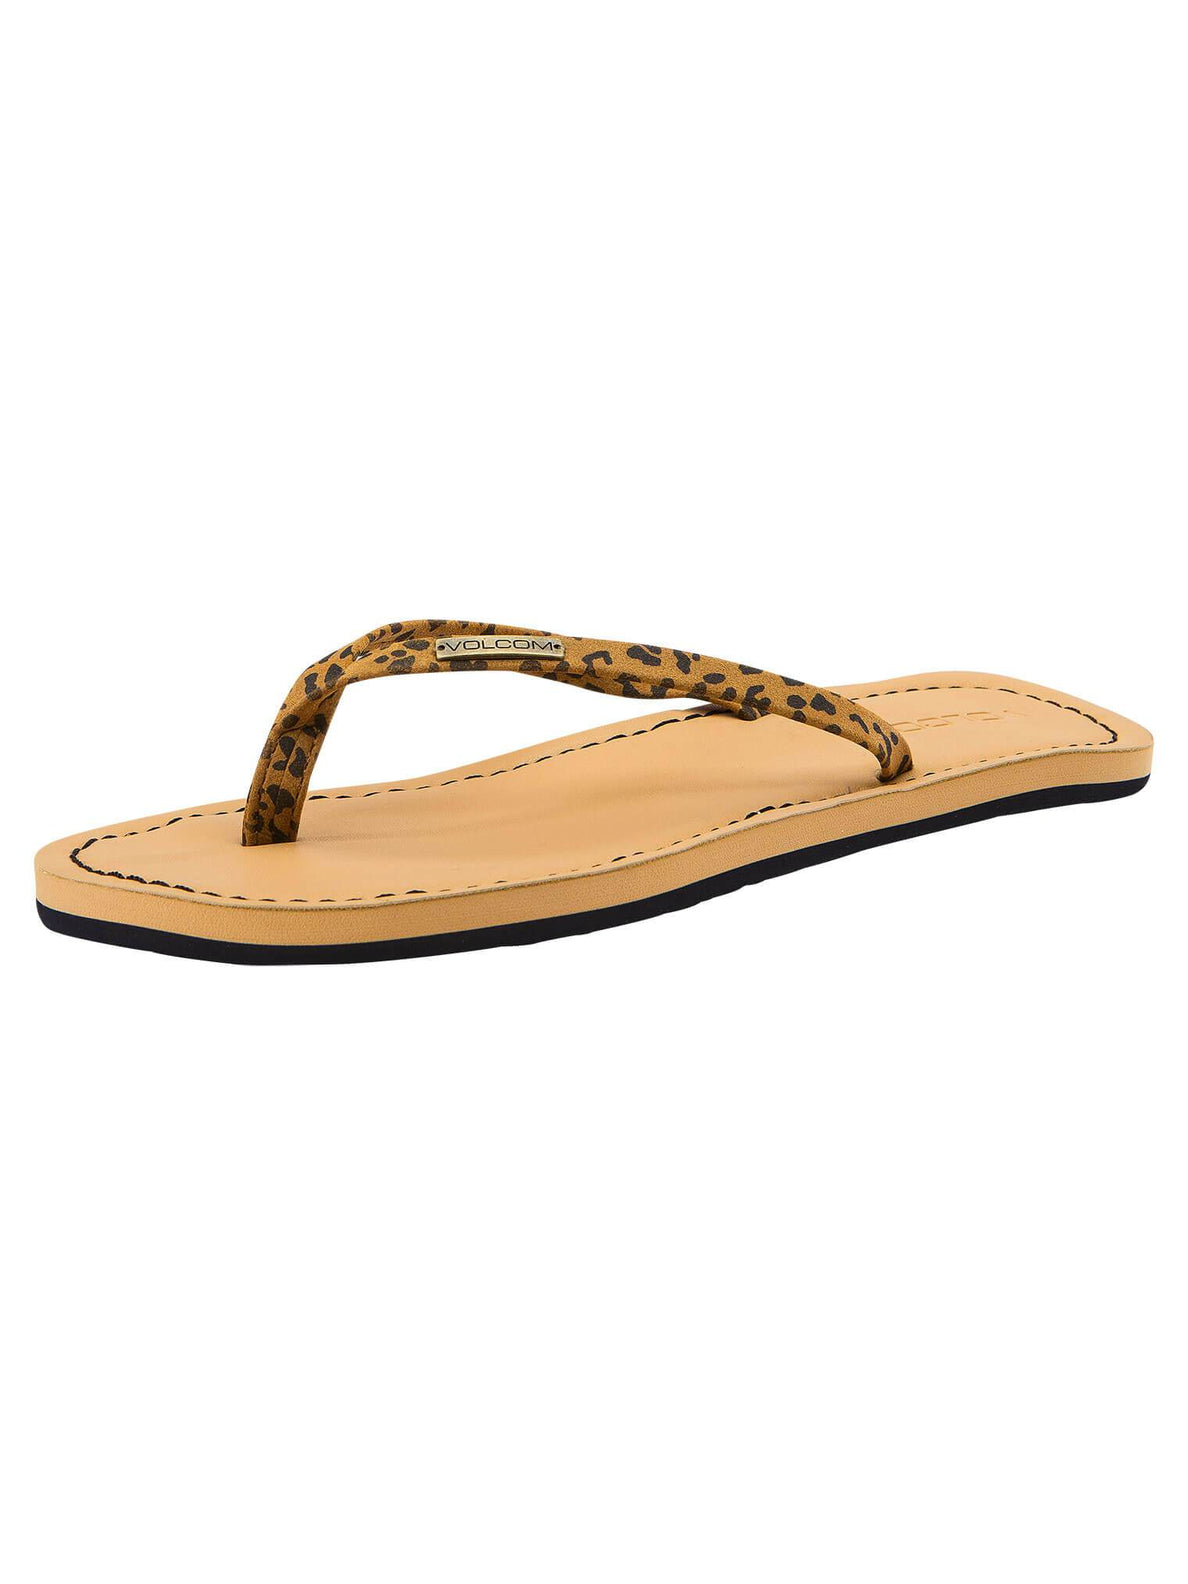 Lagos Sandals In Cheetah, Back View